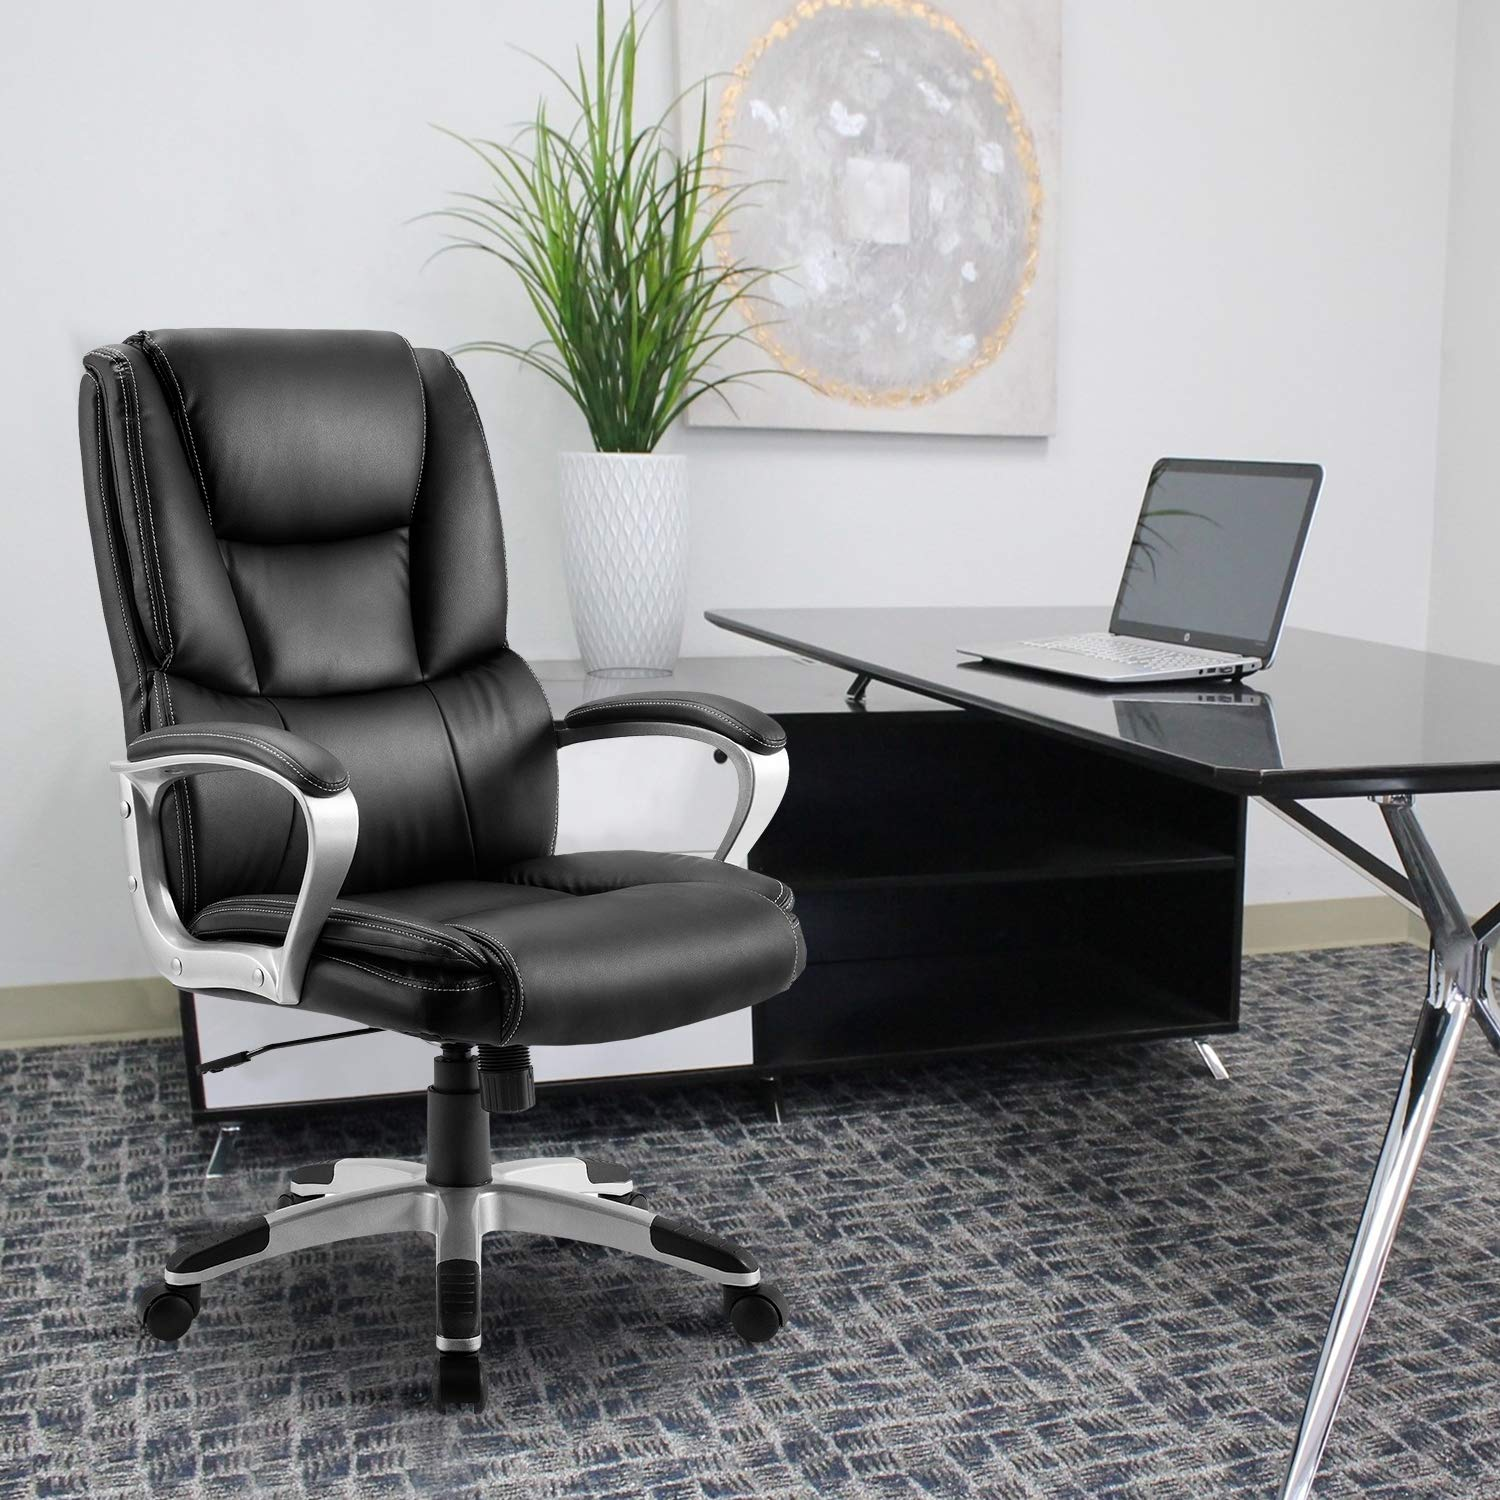 High-Black Exexutive Swivel Home Office Chair Bonded Leather Computer Desk Chair Heavy Duty Nylon Base with 300lbs Weight Capacity